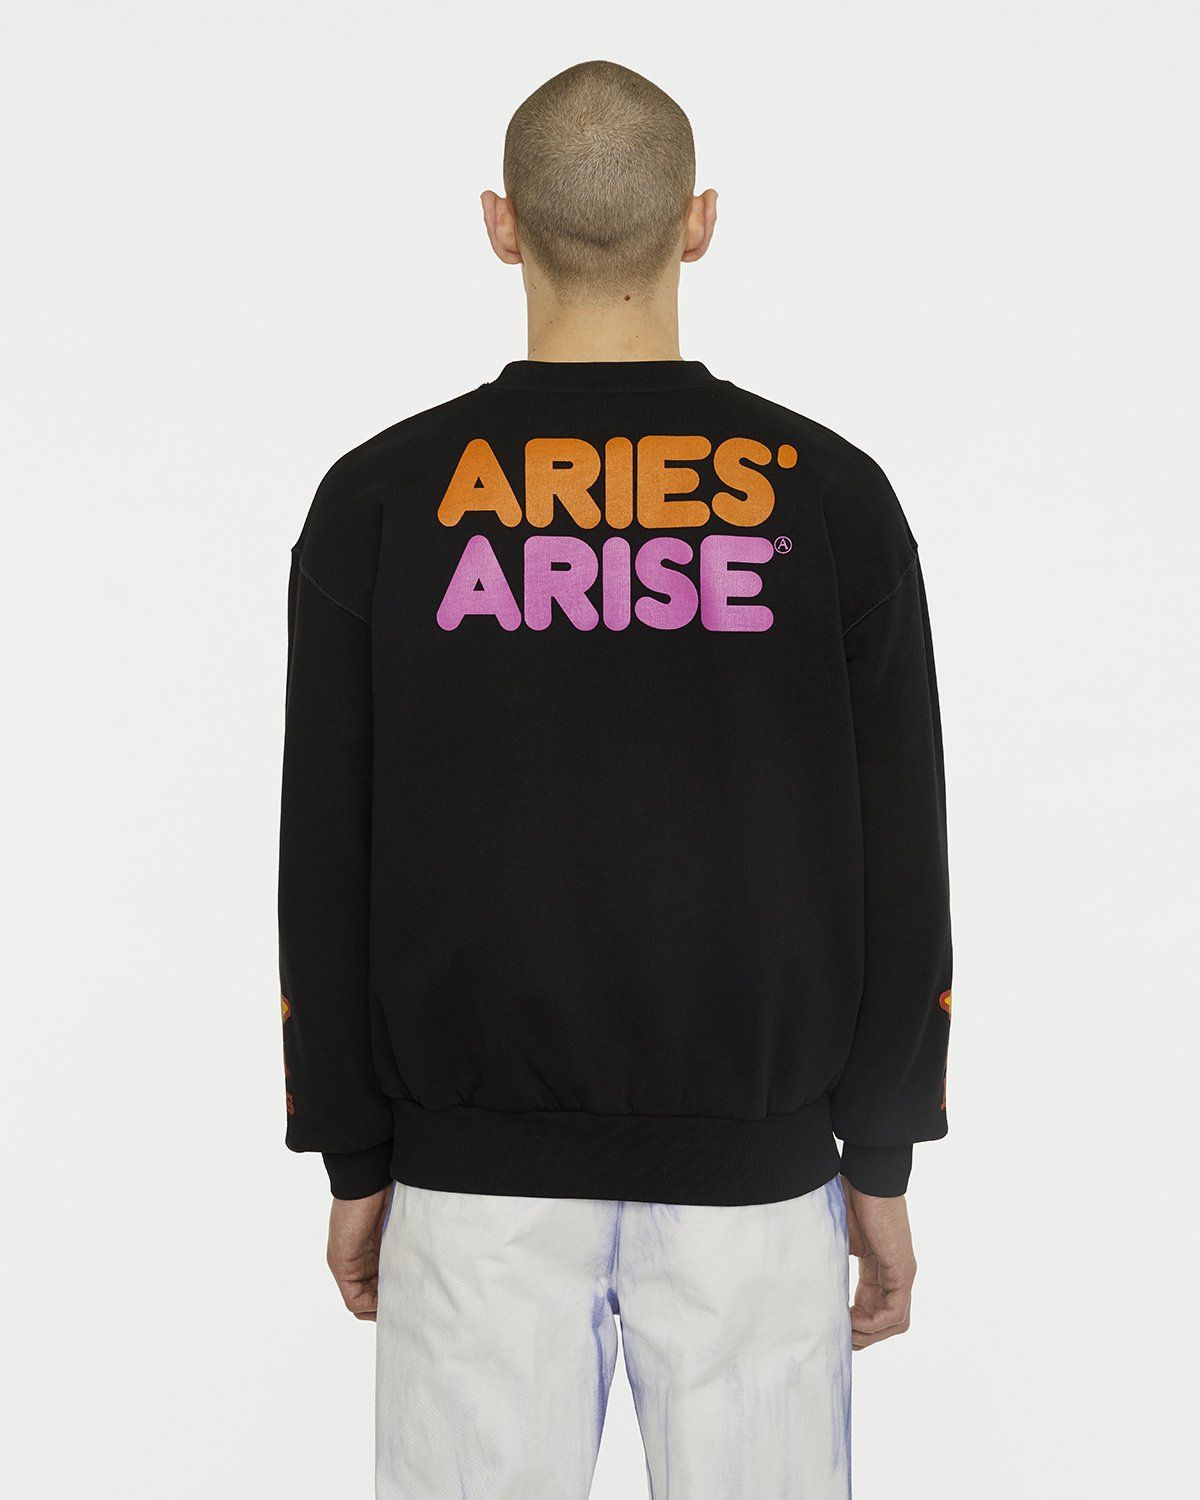 Aries - Fast Food Sweatshirt Black - Image 3